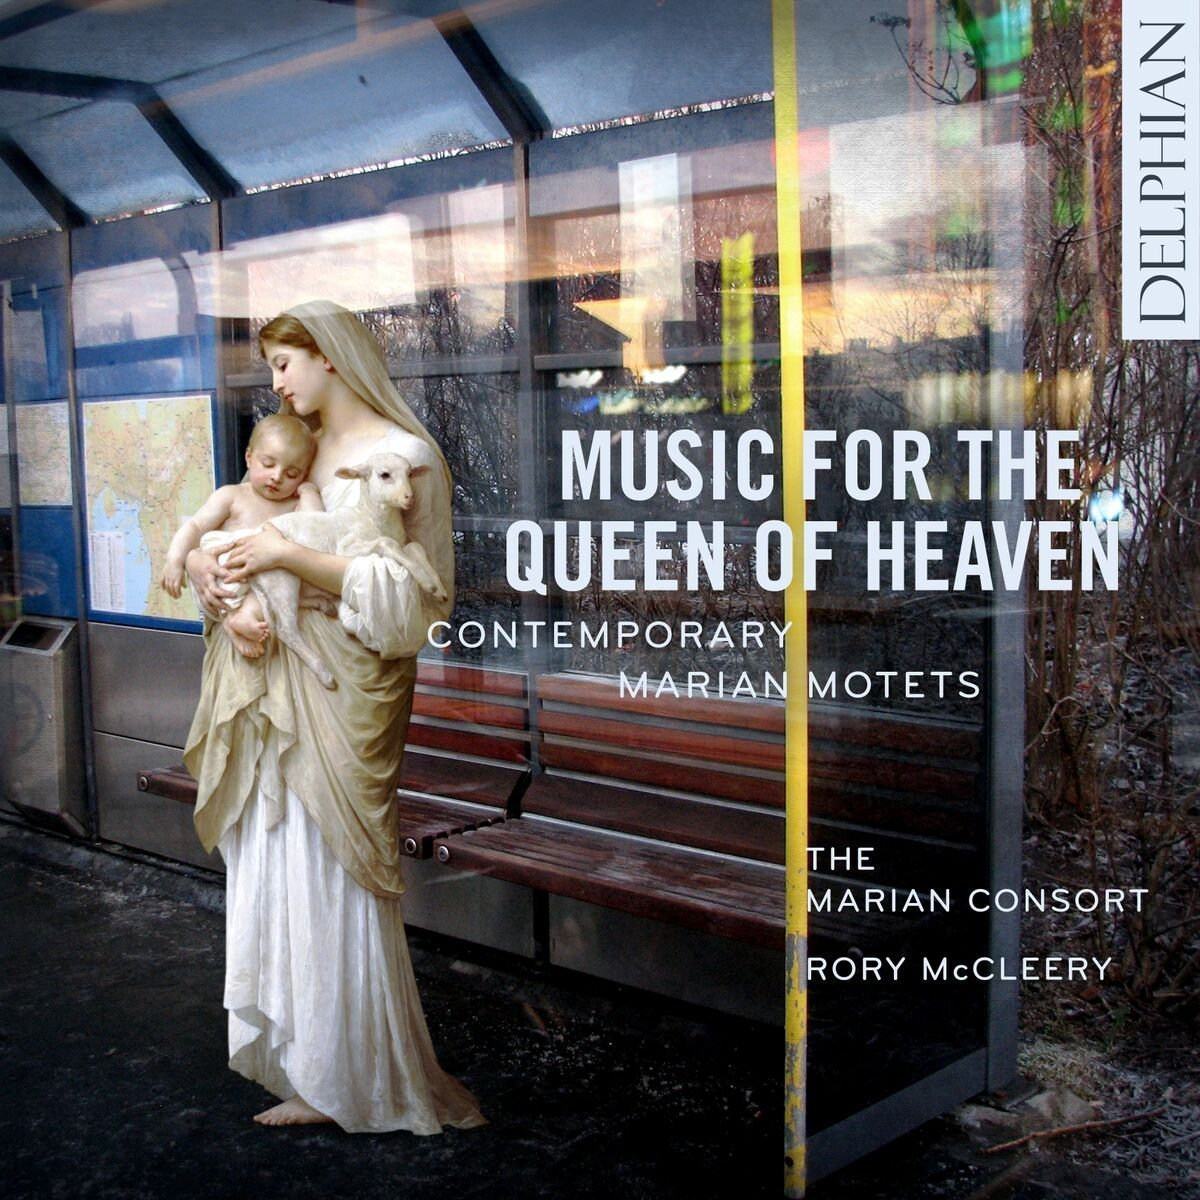 Music for the Queen of Heaven